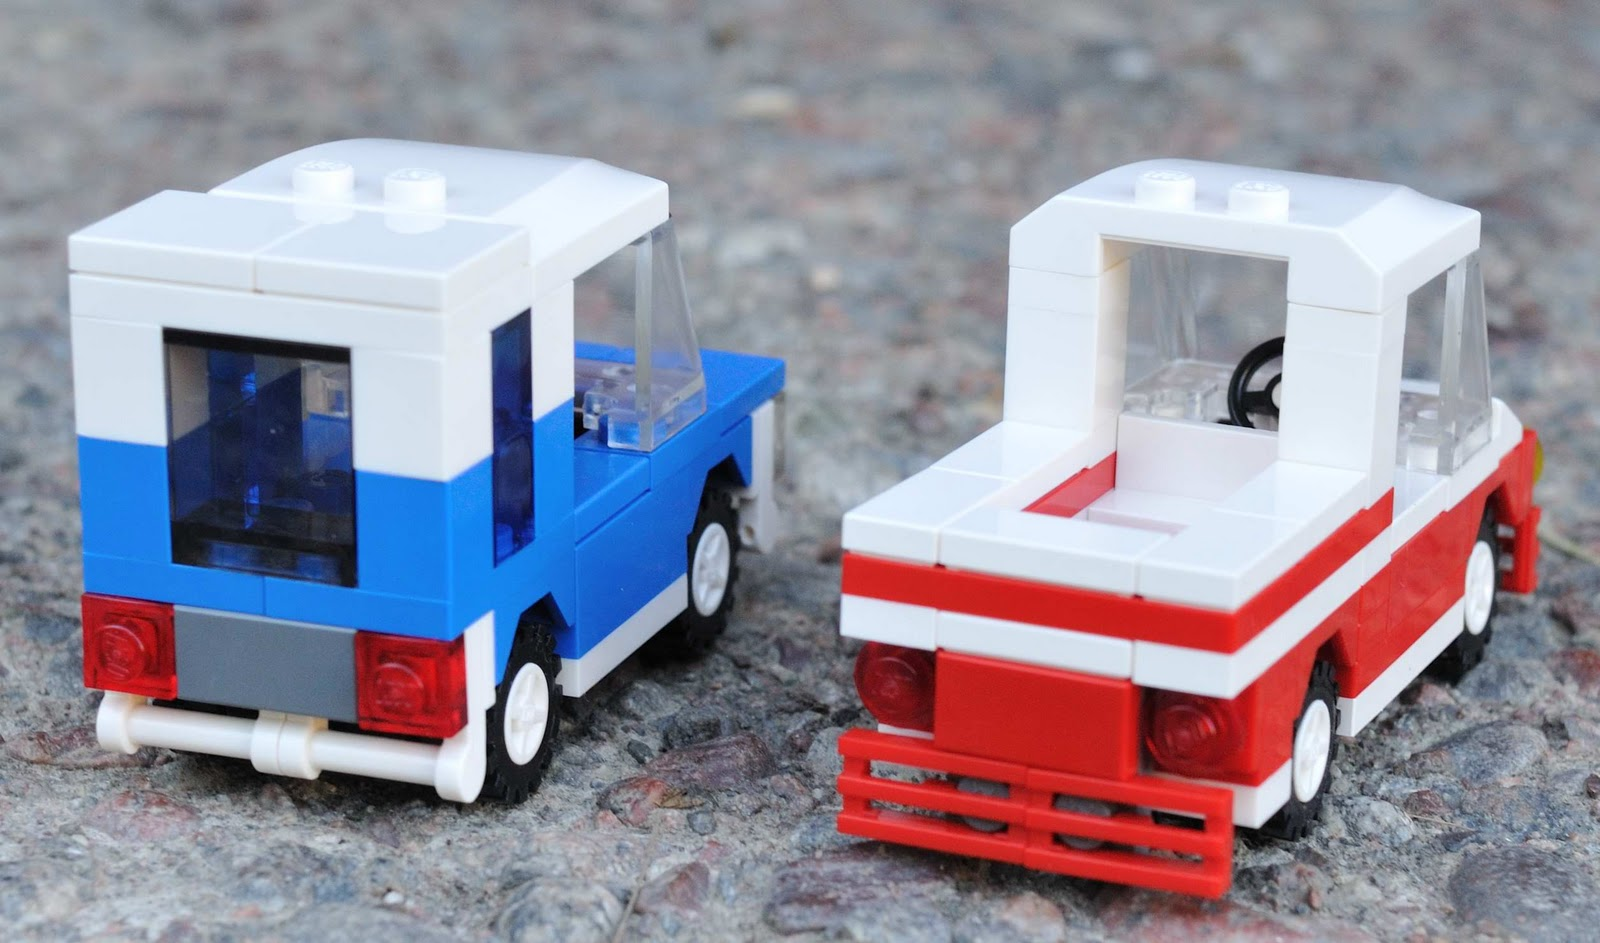 urban 39 s blog two small lego cars. Black Bedroom Furniture Sets. Home Design Ideas